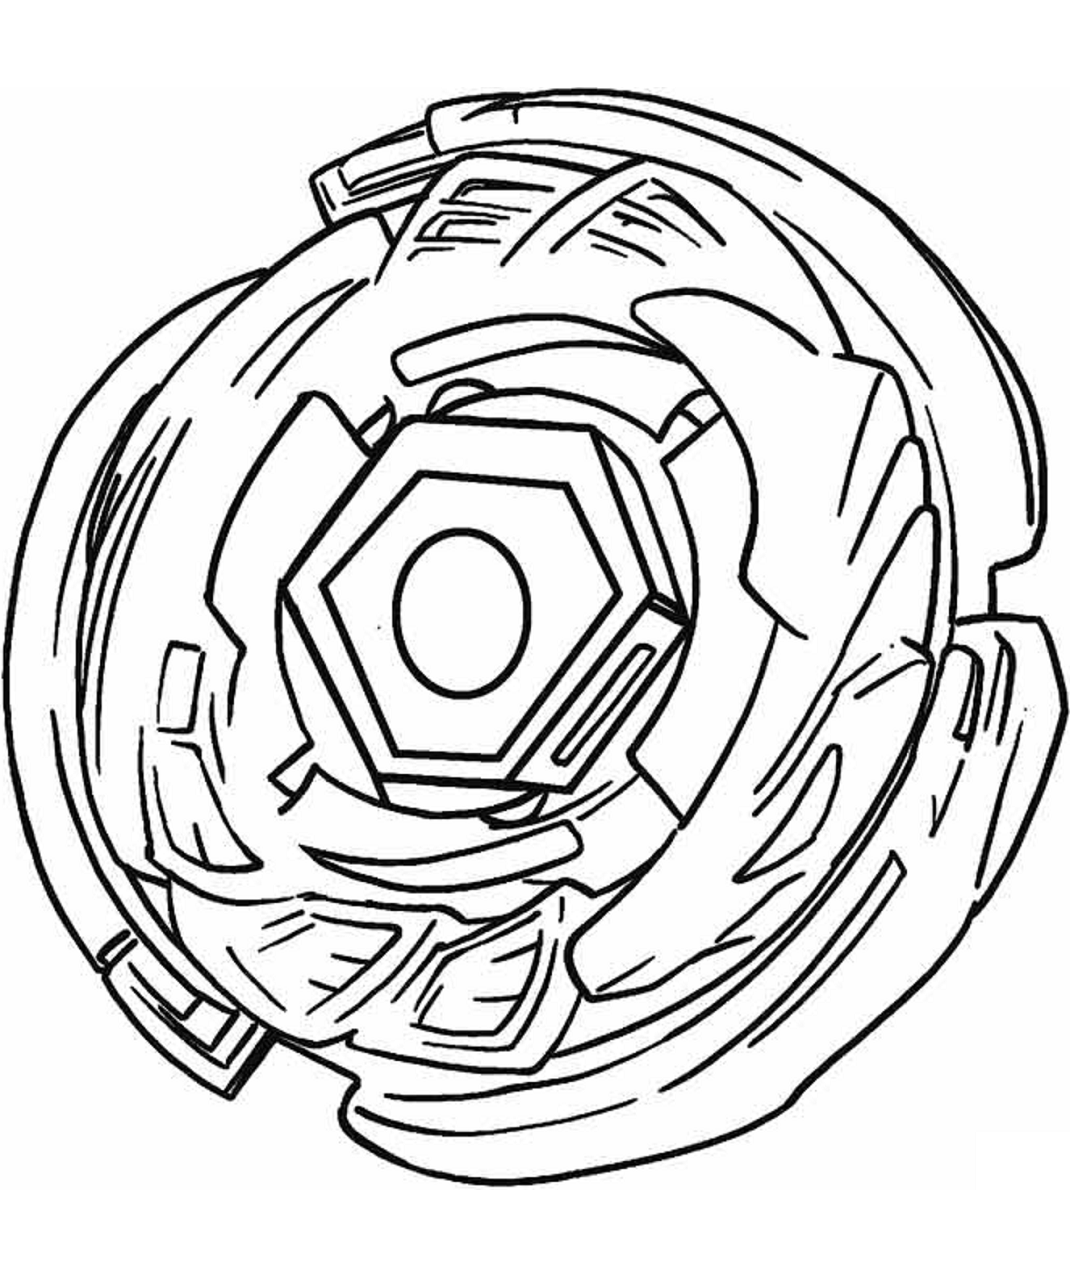 A Beyblade Coloring Page Free Printable Coloring Pages For Kids